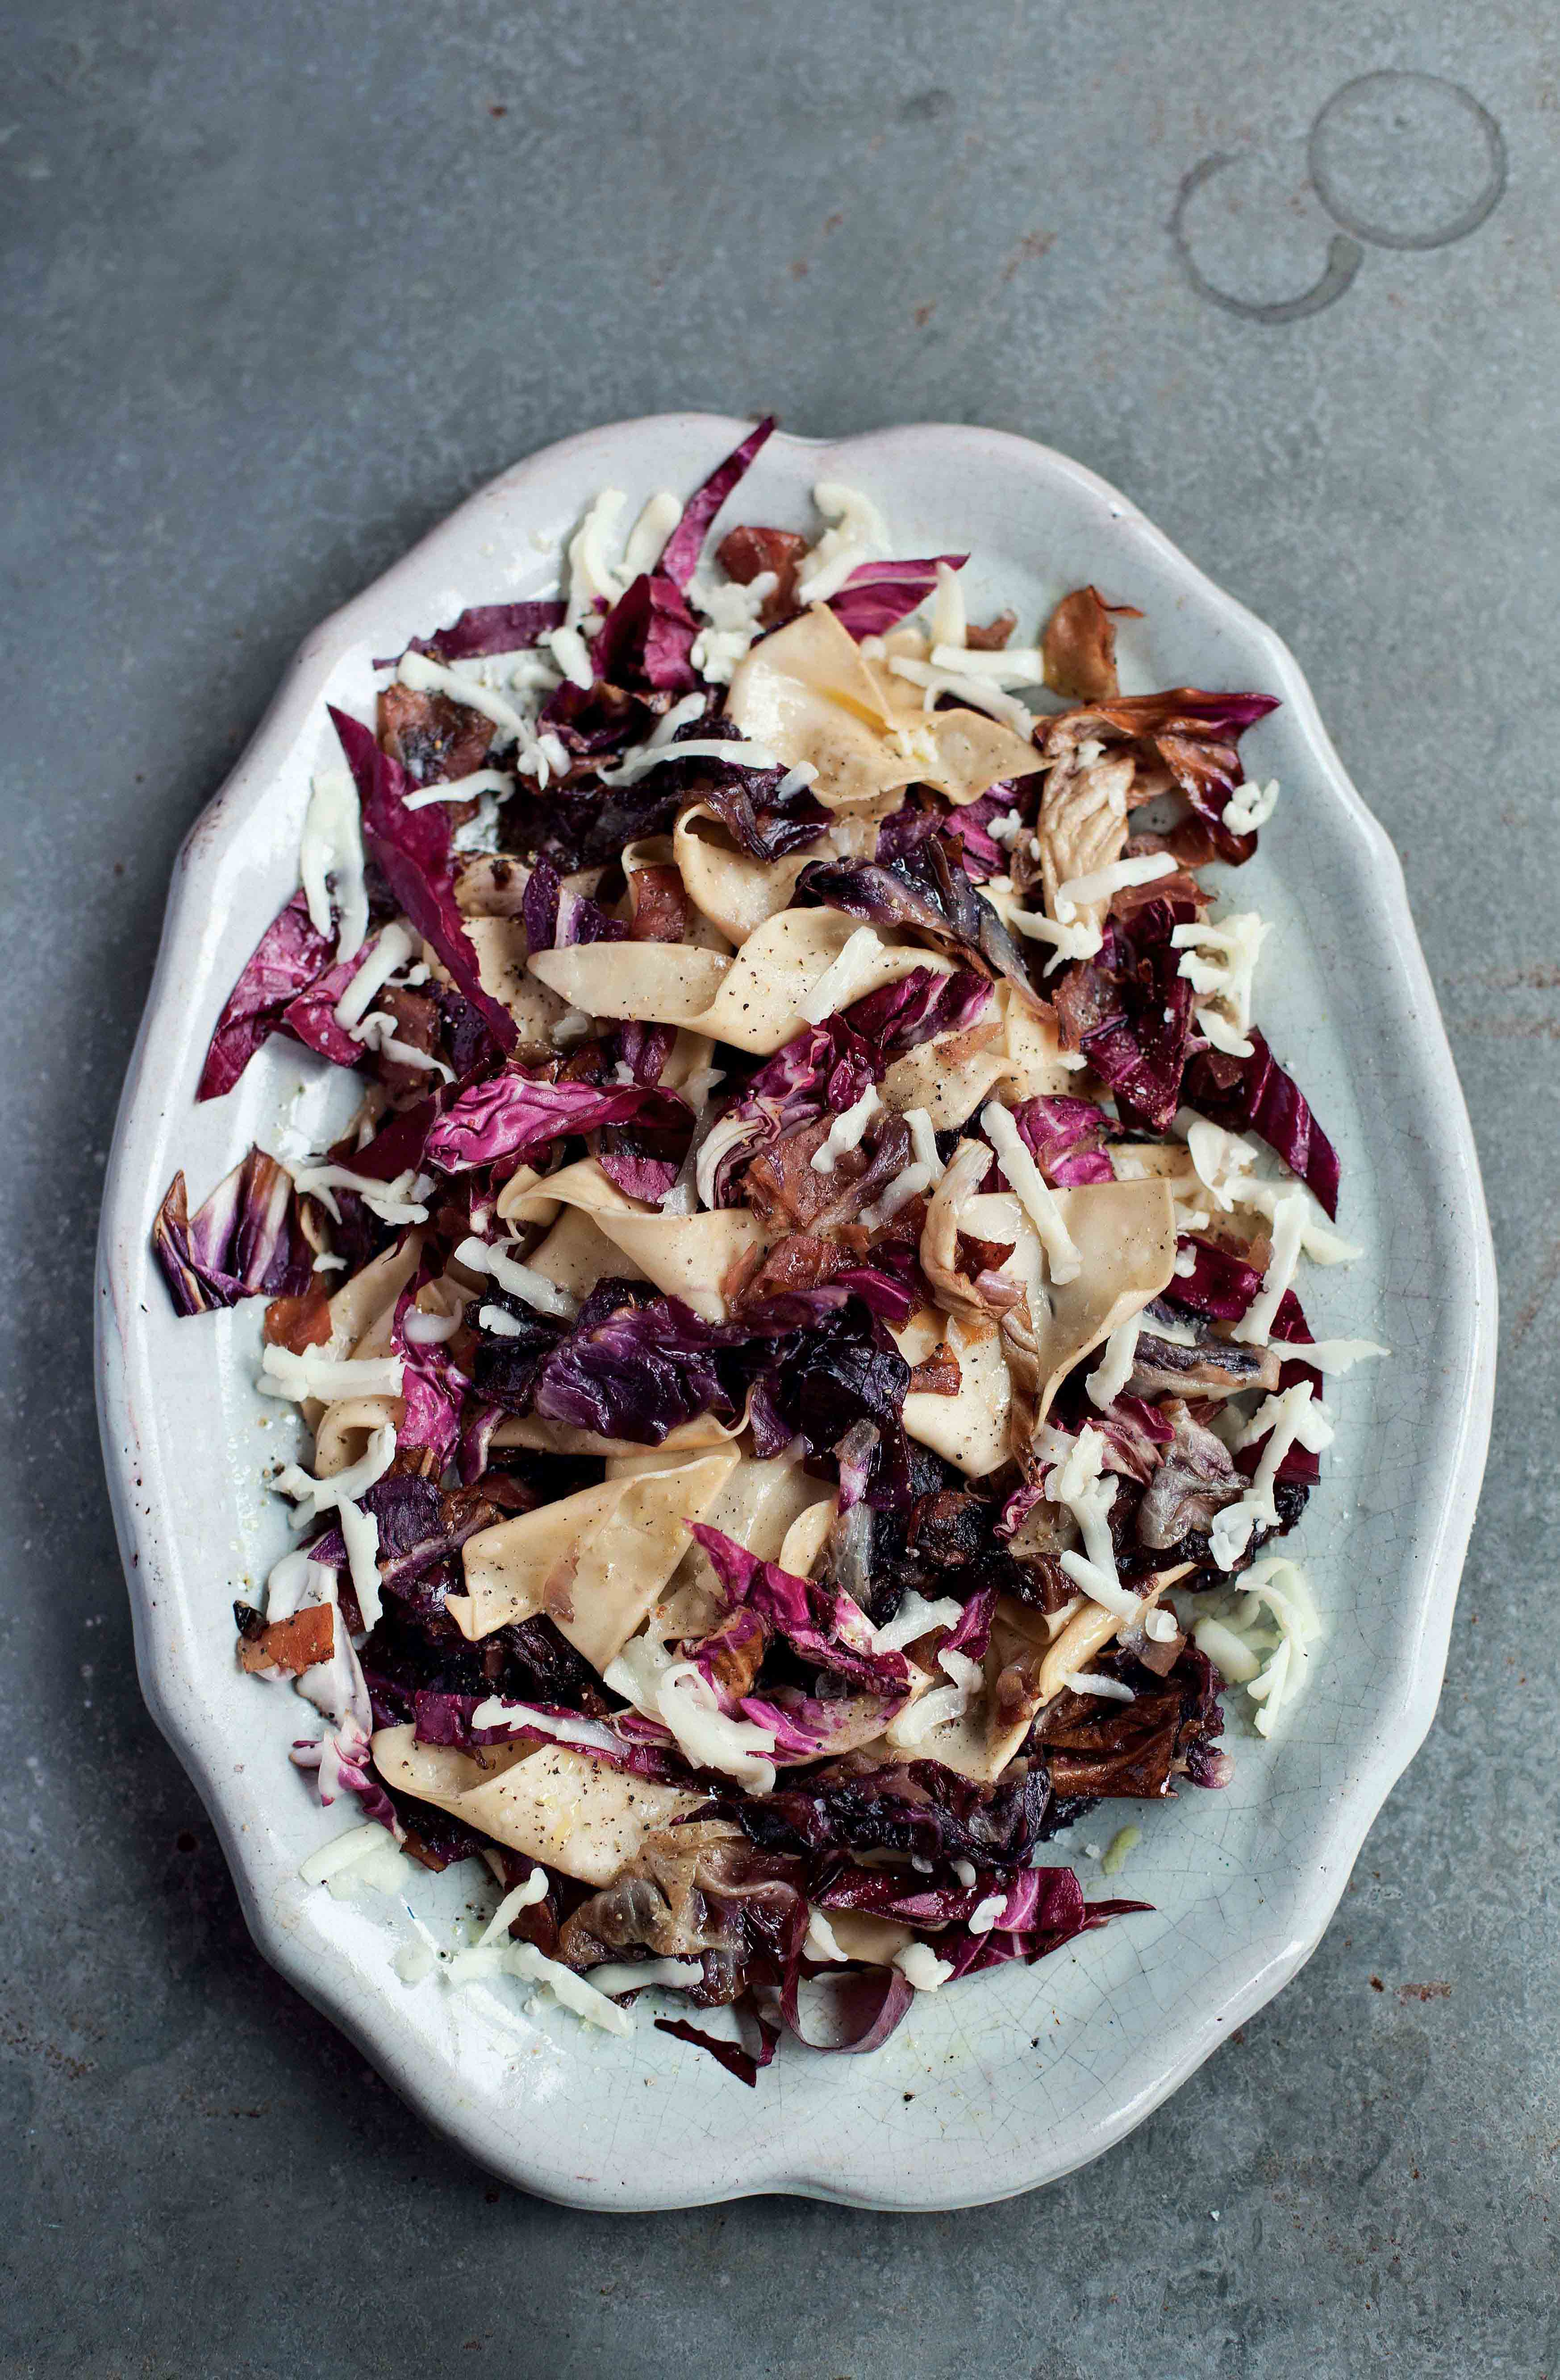 Pasta pieces with radicchio and speck